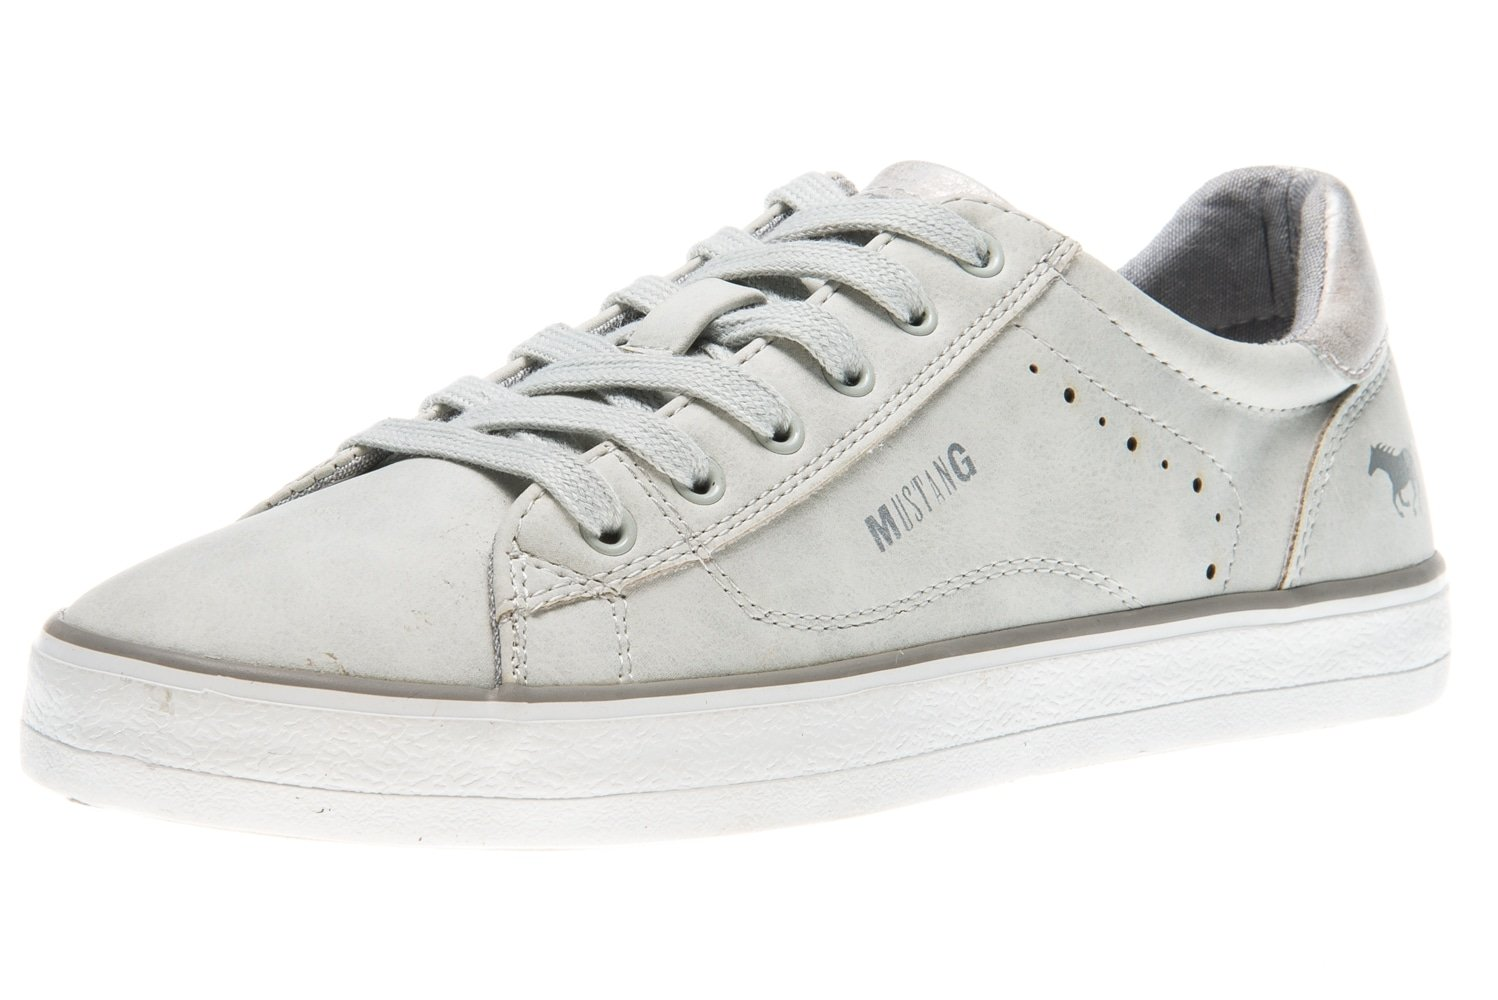 Mustang 1272-301-203, 19992 Sneakers Basses Femme, Ice Ice B00ZP324CO Ice 6cbd284 - automatisms.space